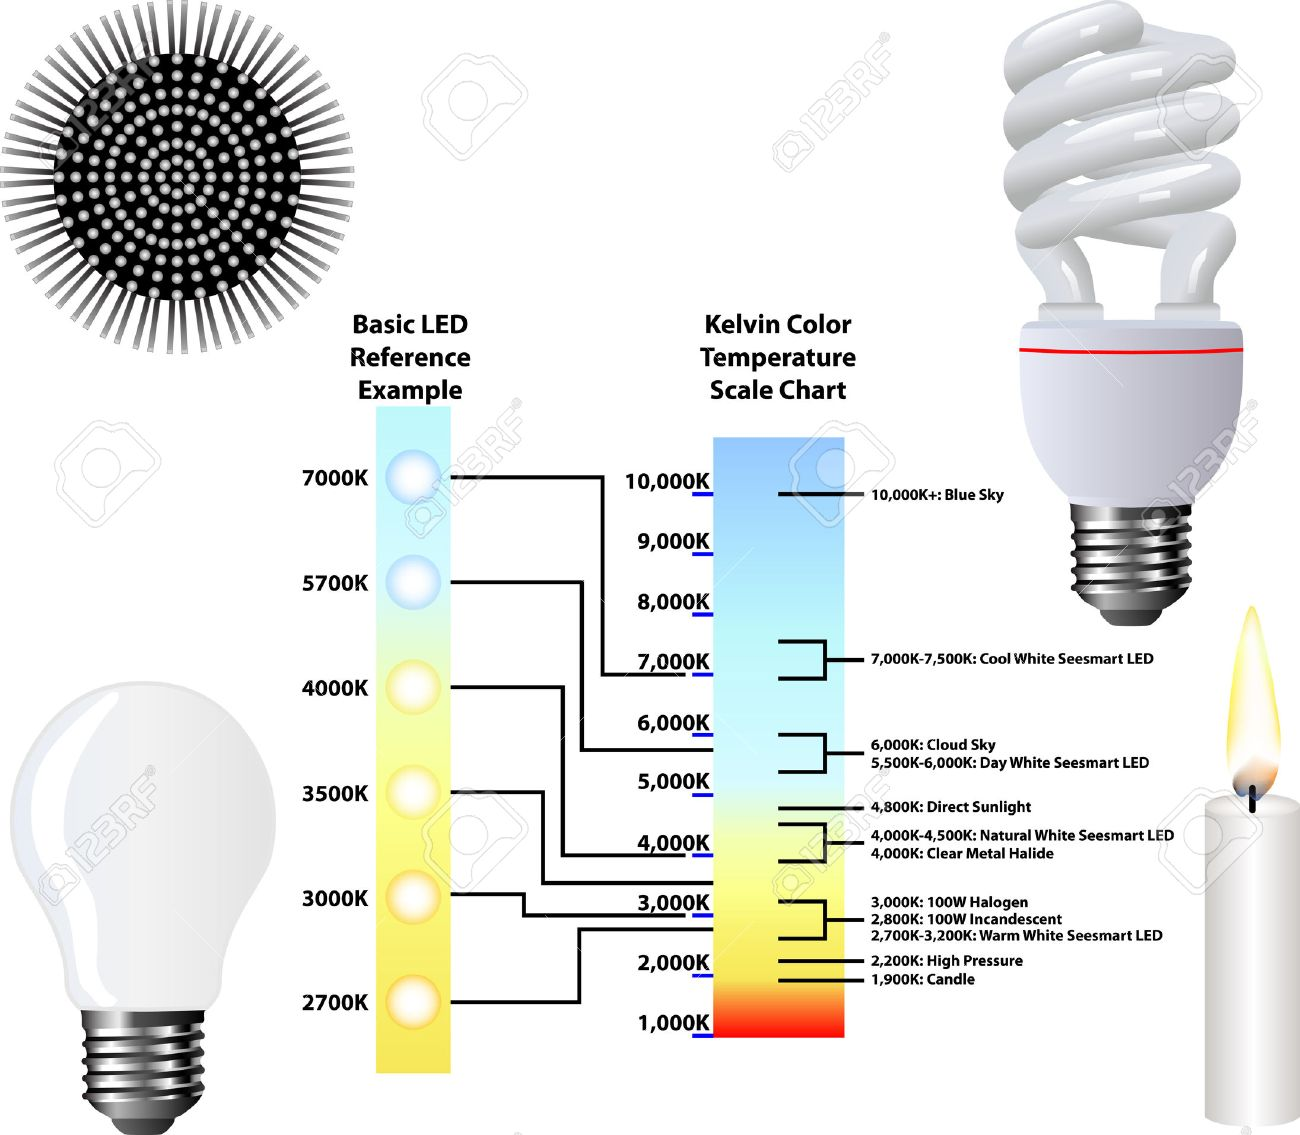 Kelvin Color Temperature Scale Chart Royalty Free Cliparts ...